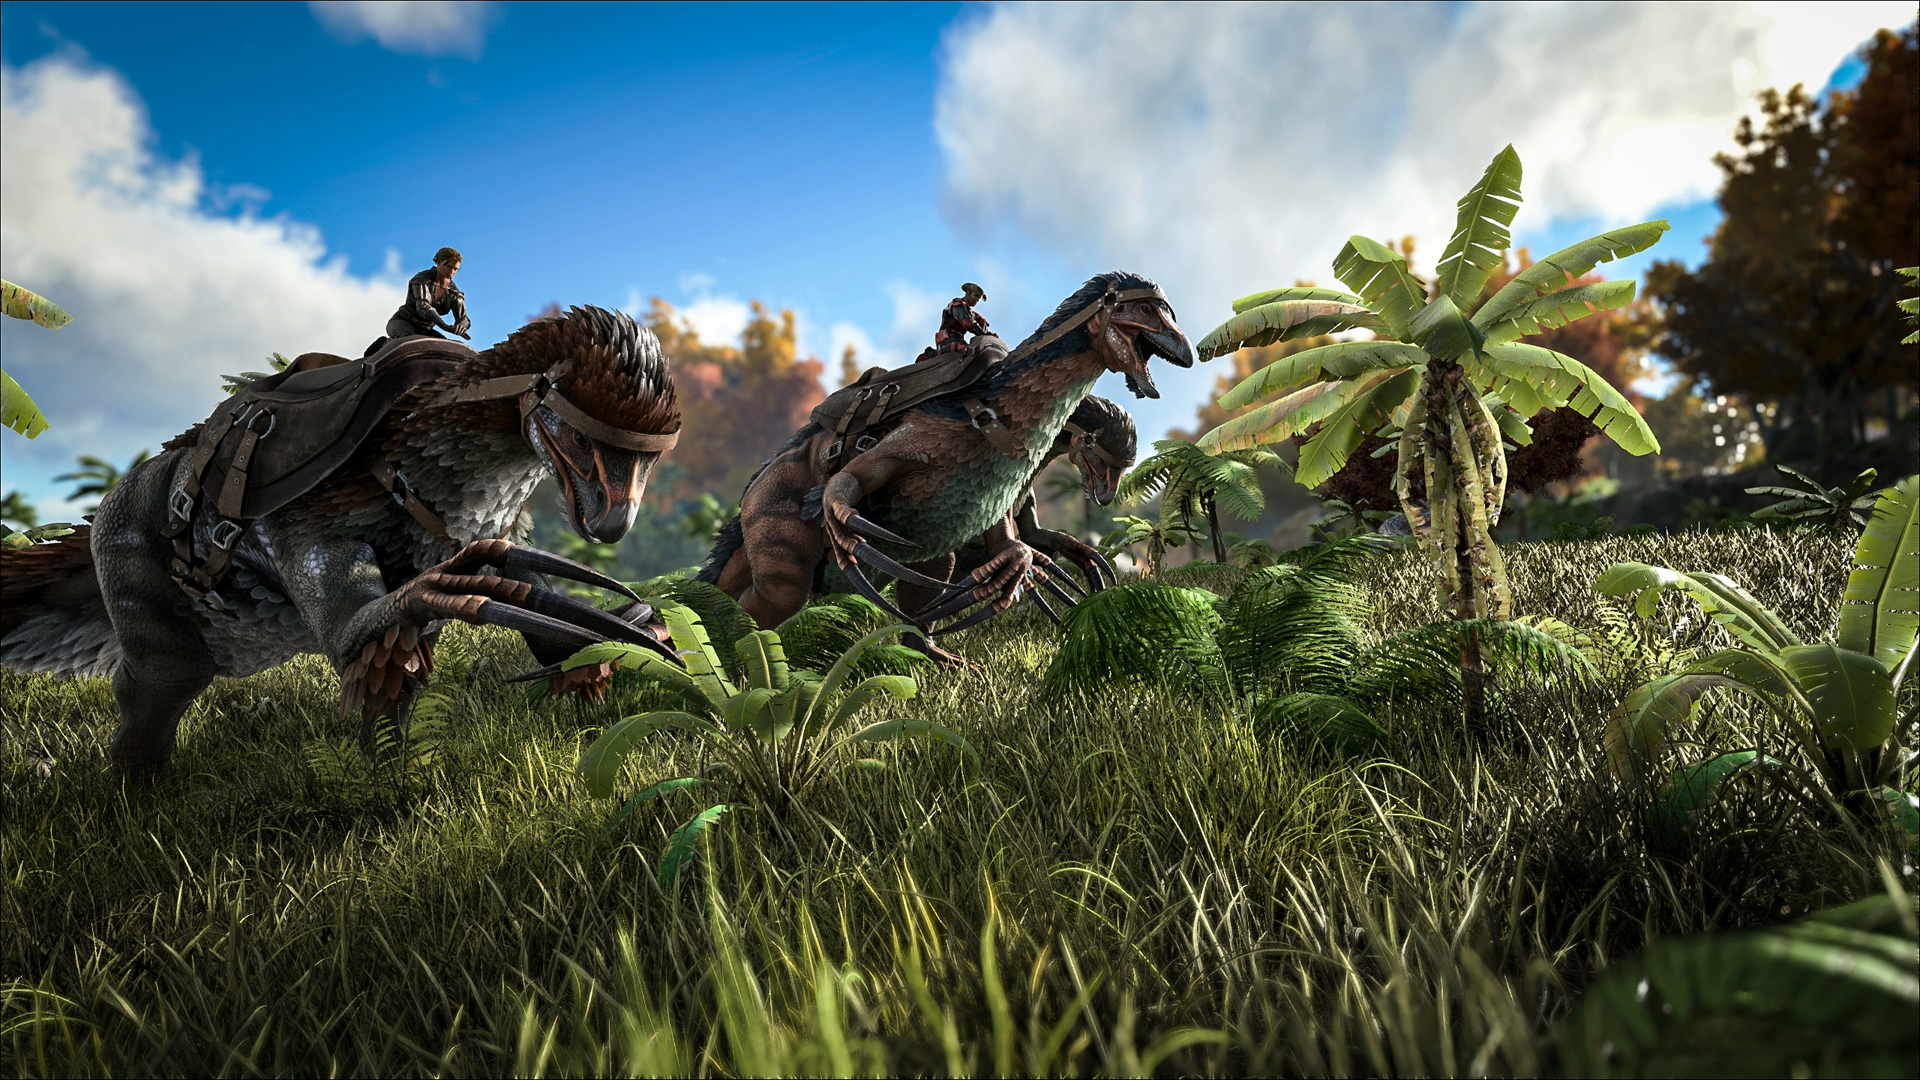 download ark survival evolved cracked by codex include all dlc and latest update mirrorace multiup